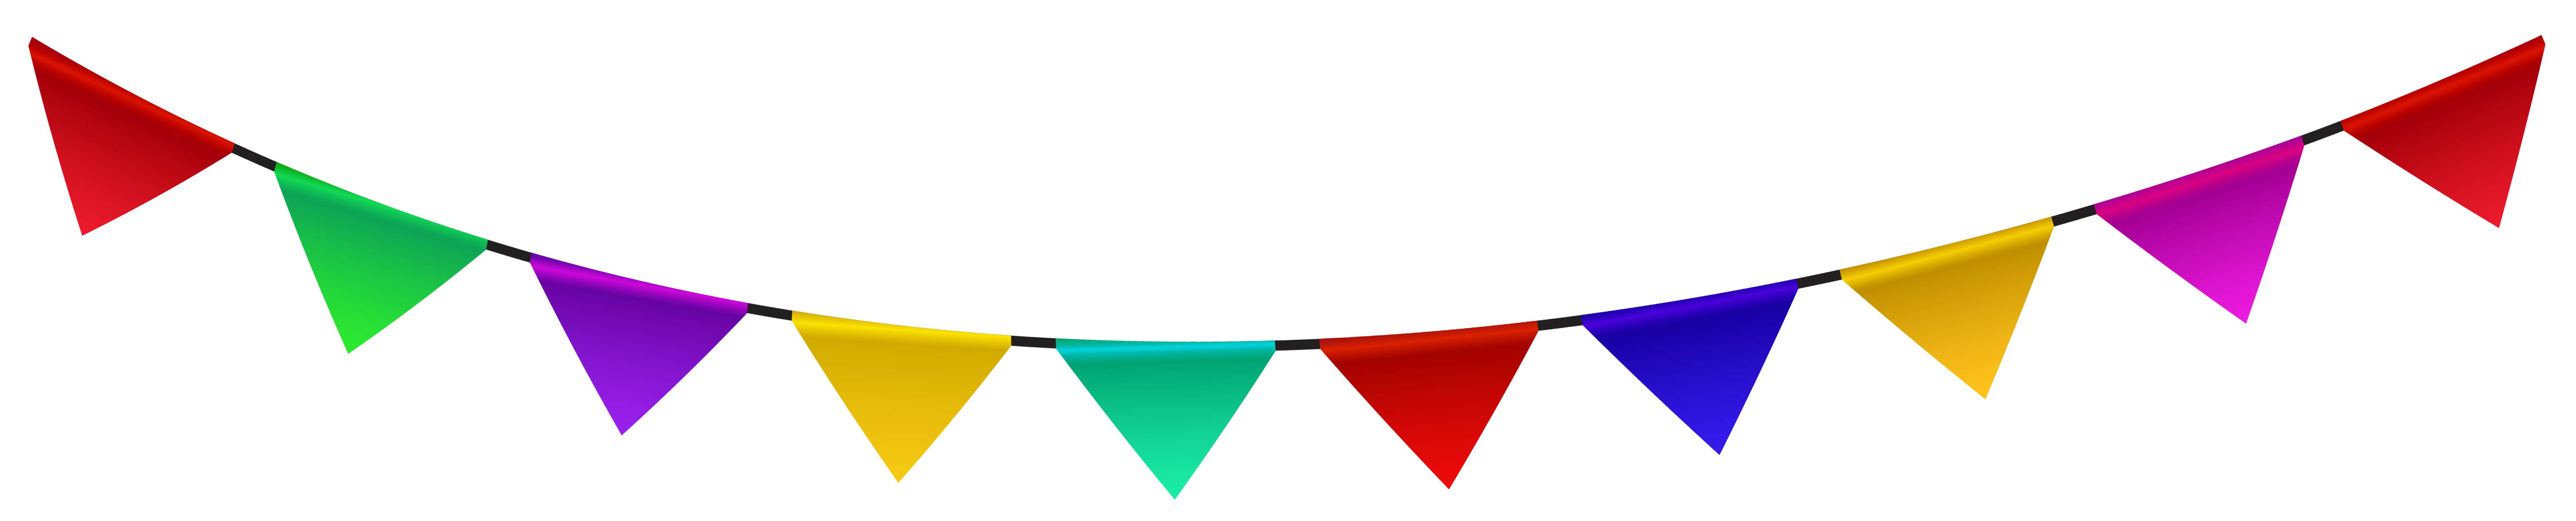 Party bunting png. Free decorations cliparts download